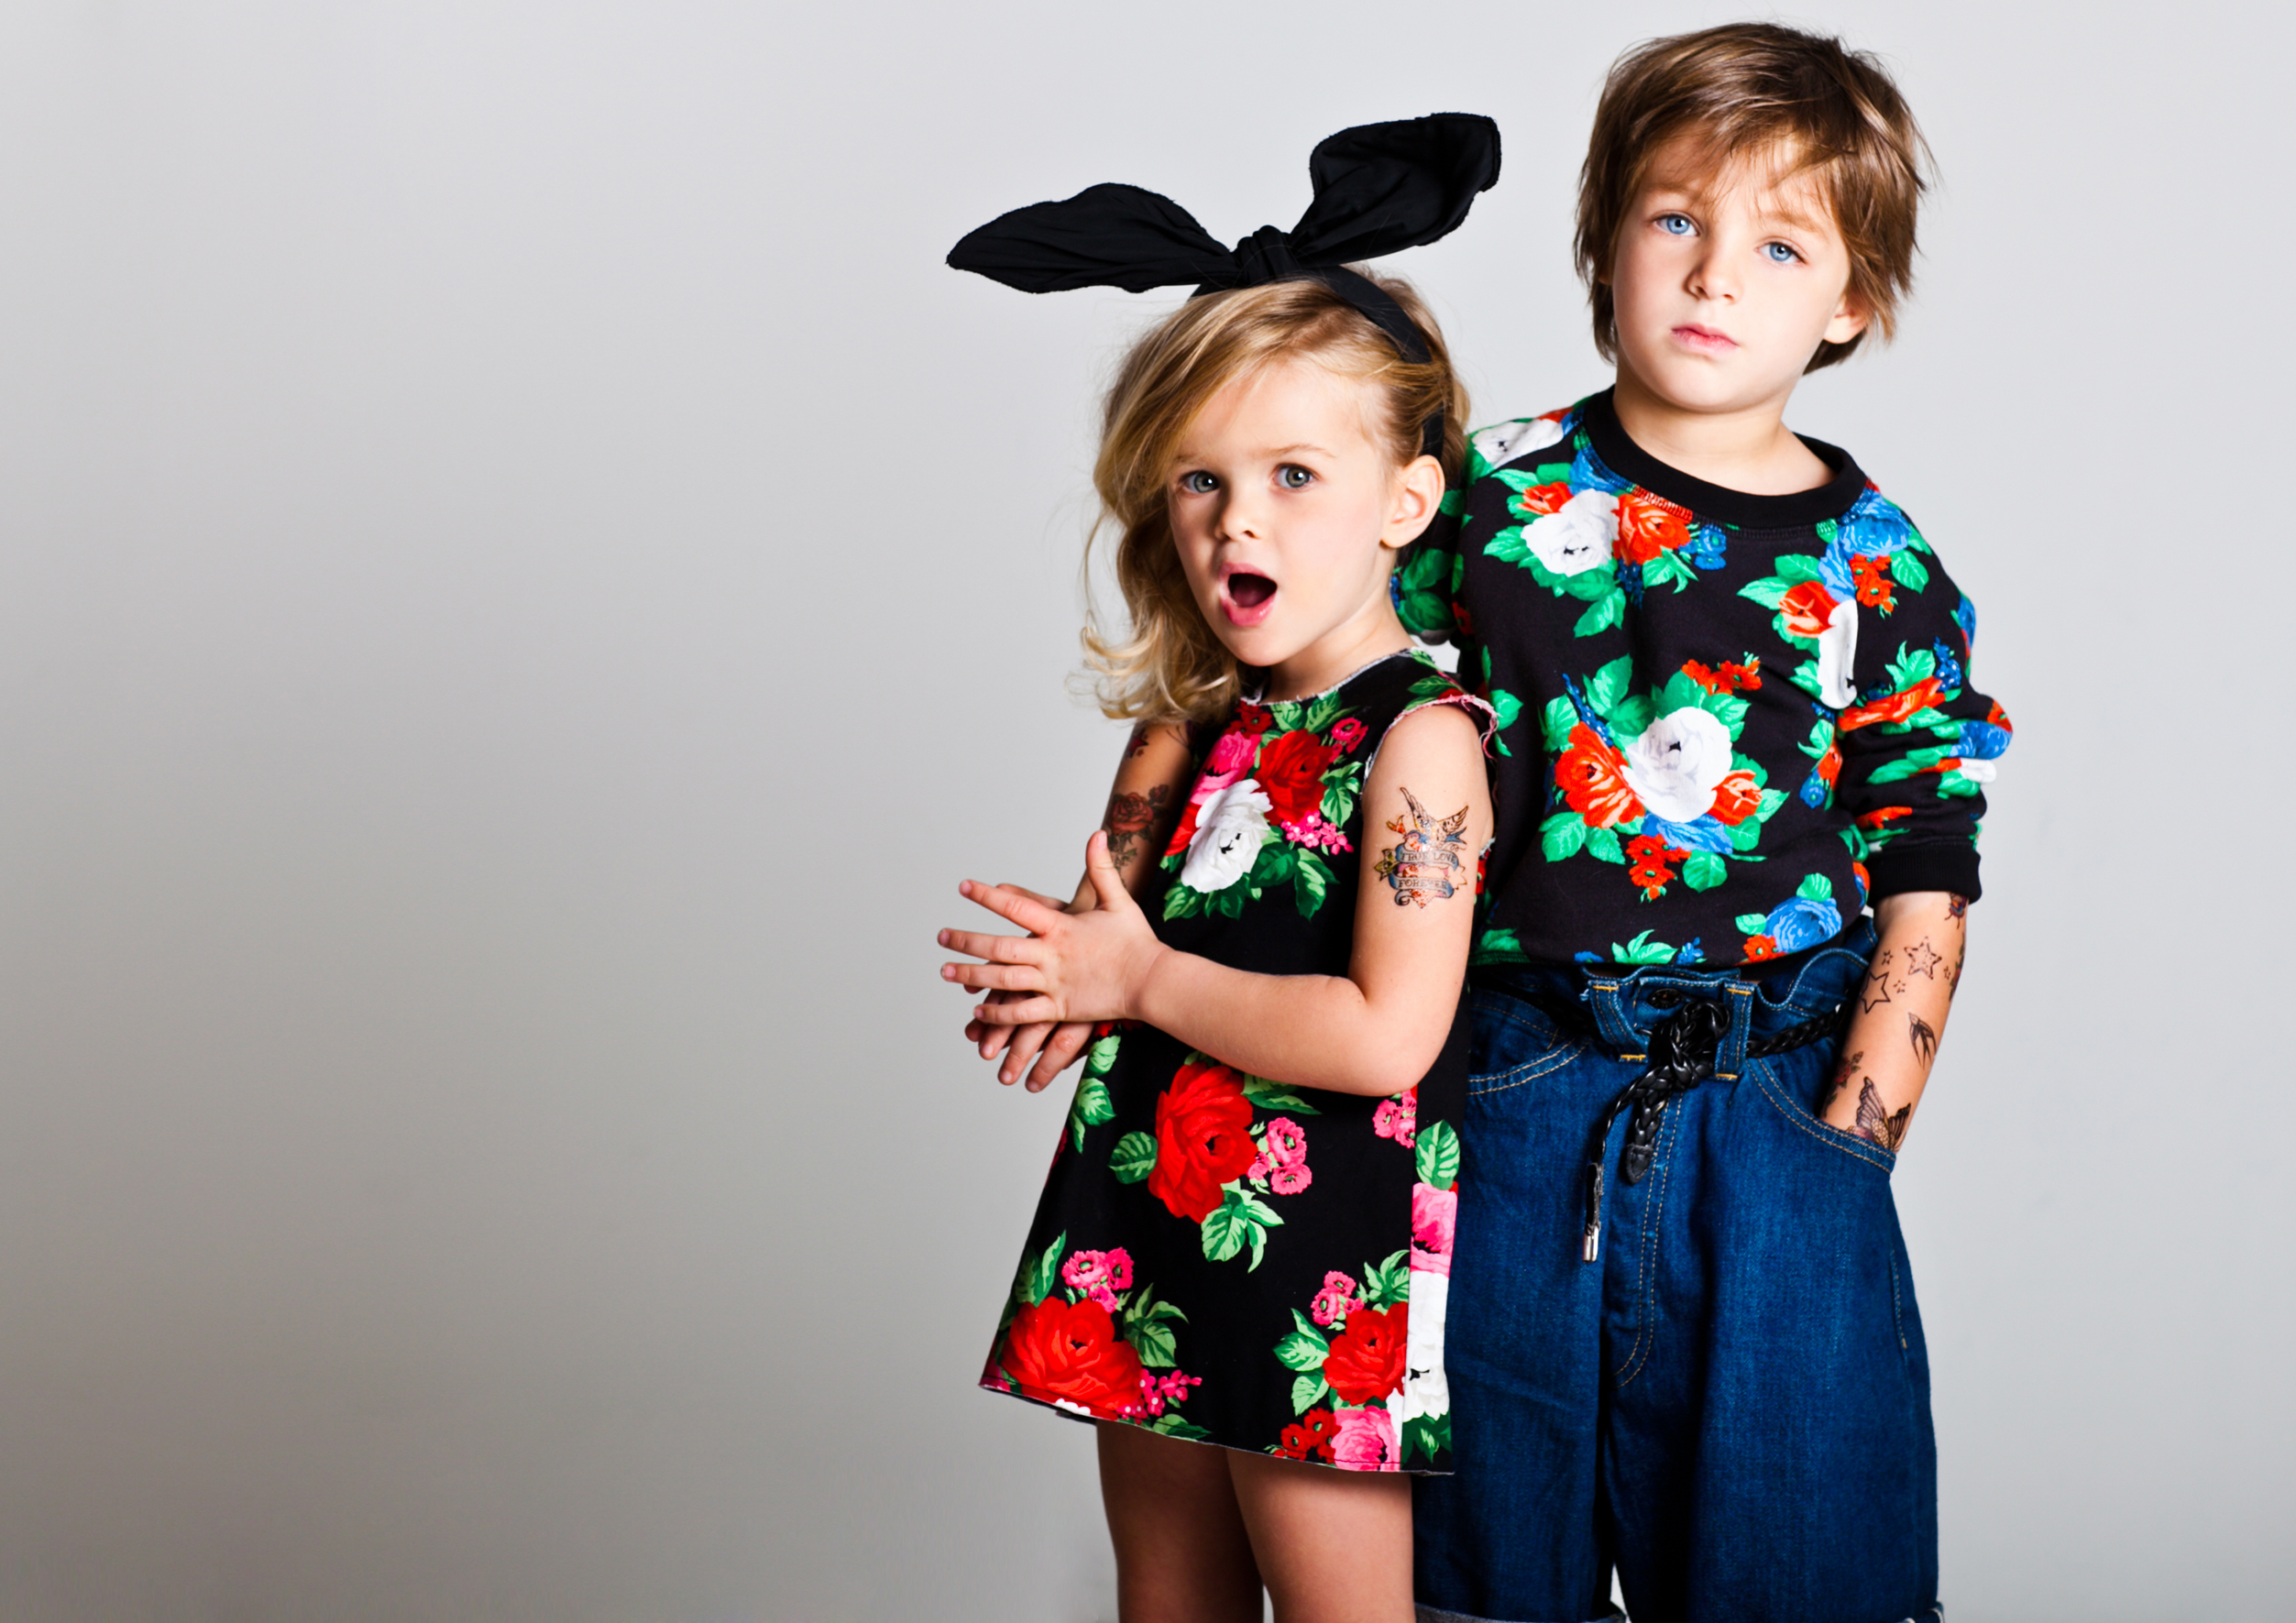 MSGM_Kids_ROCK_FLOWERcouple